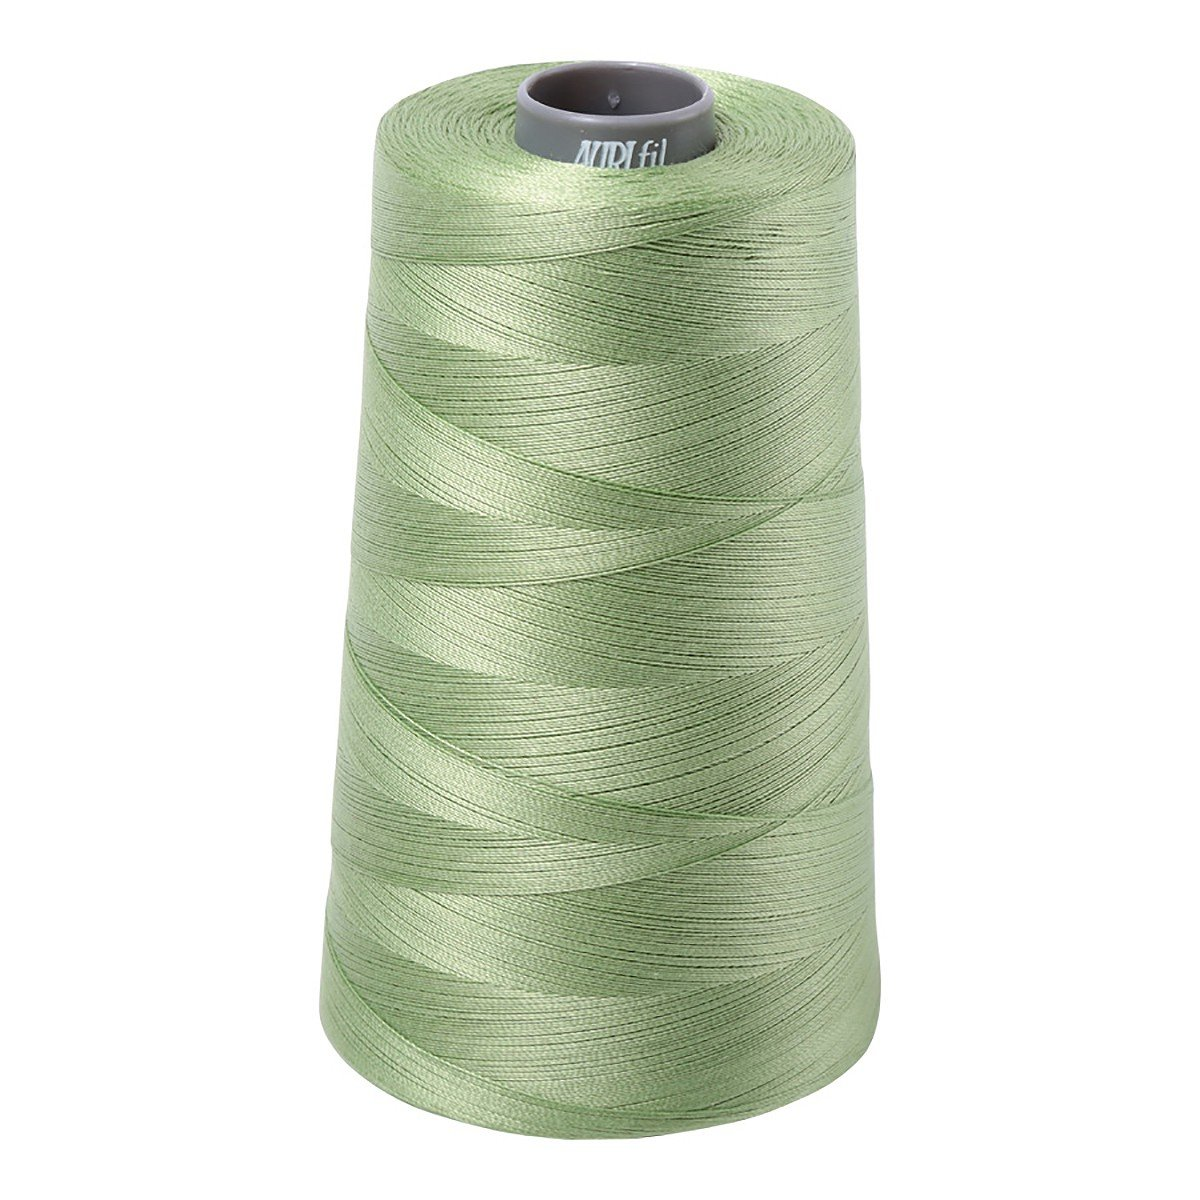 Mako (Cotton) Embroidery Thread 28wt 3609yds Light Fern